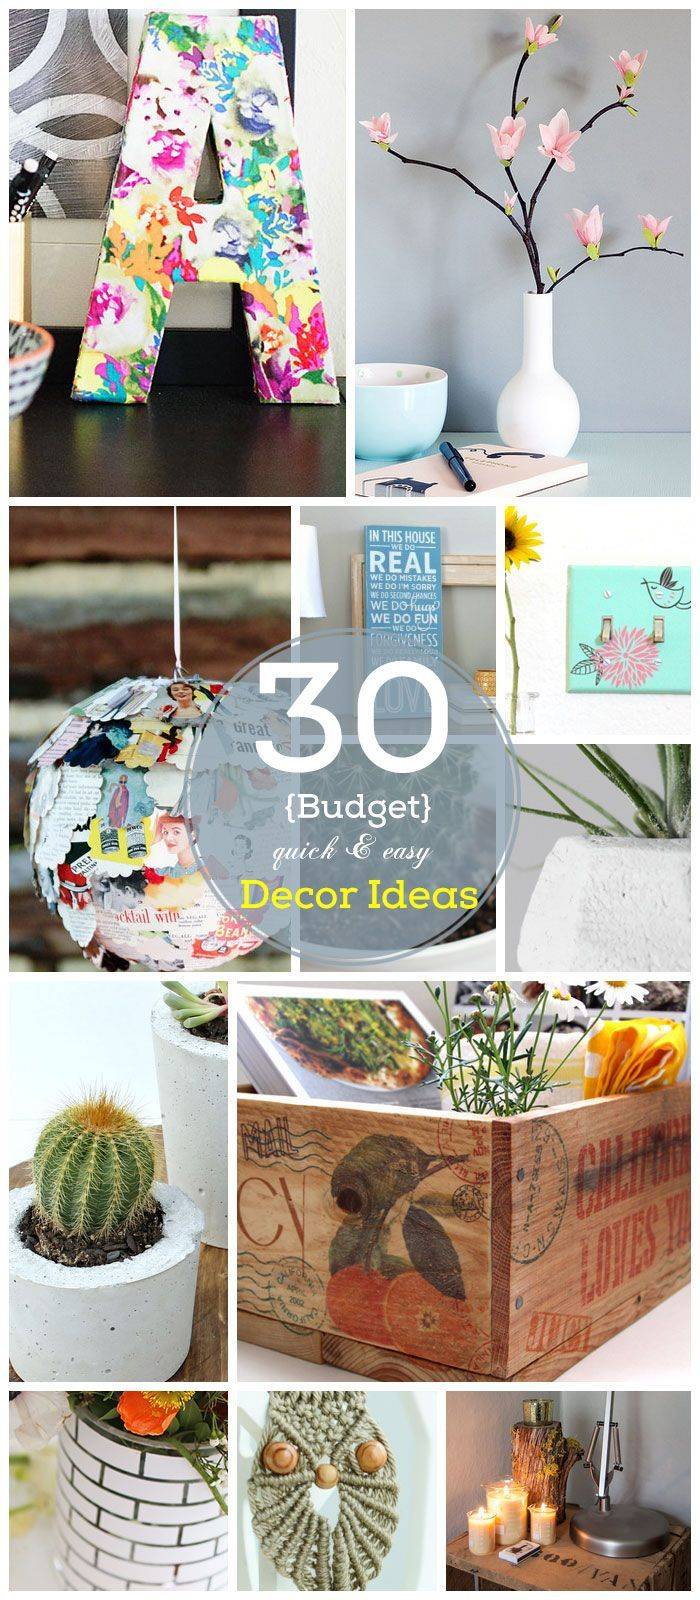 Best 26 Diy Living Room Decor Ideas On A Budget Creative Decor This Month